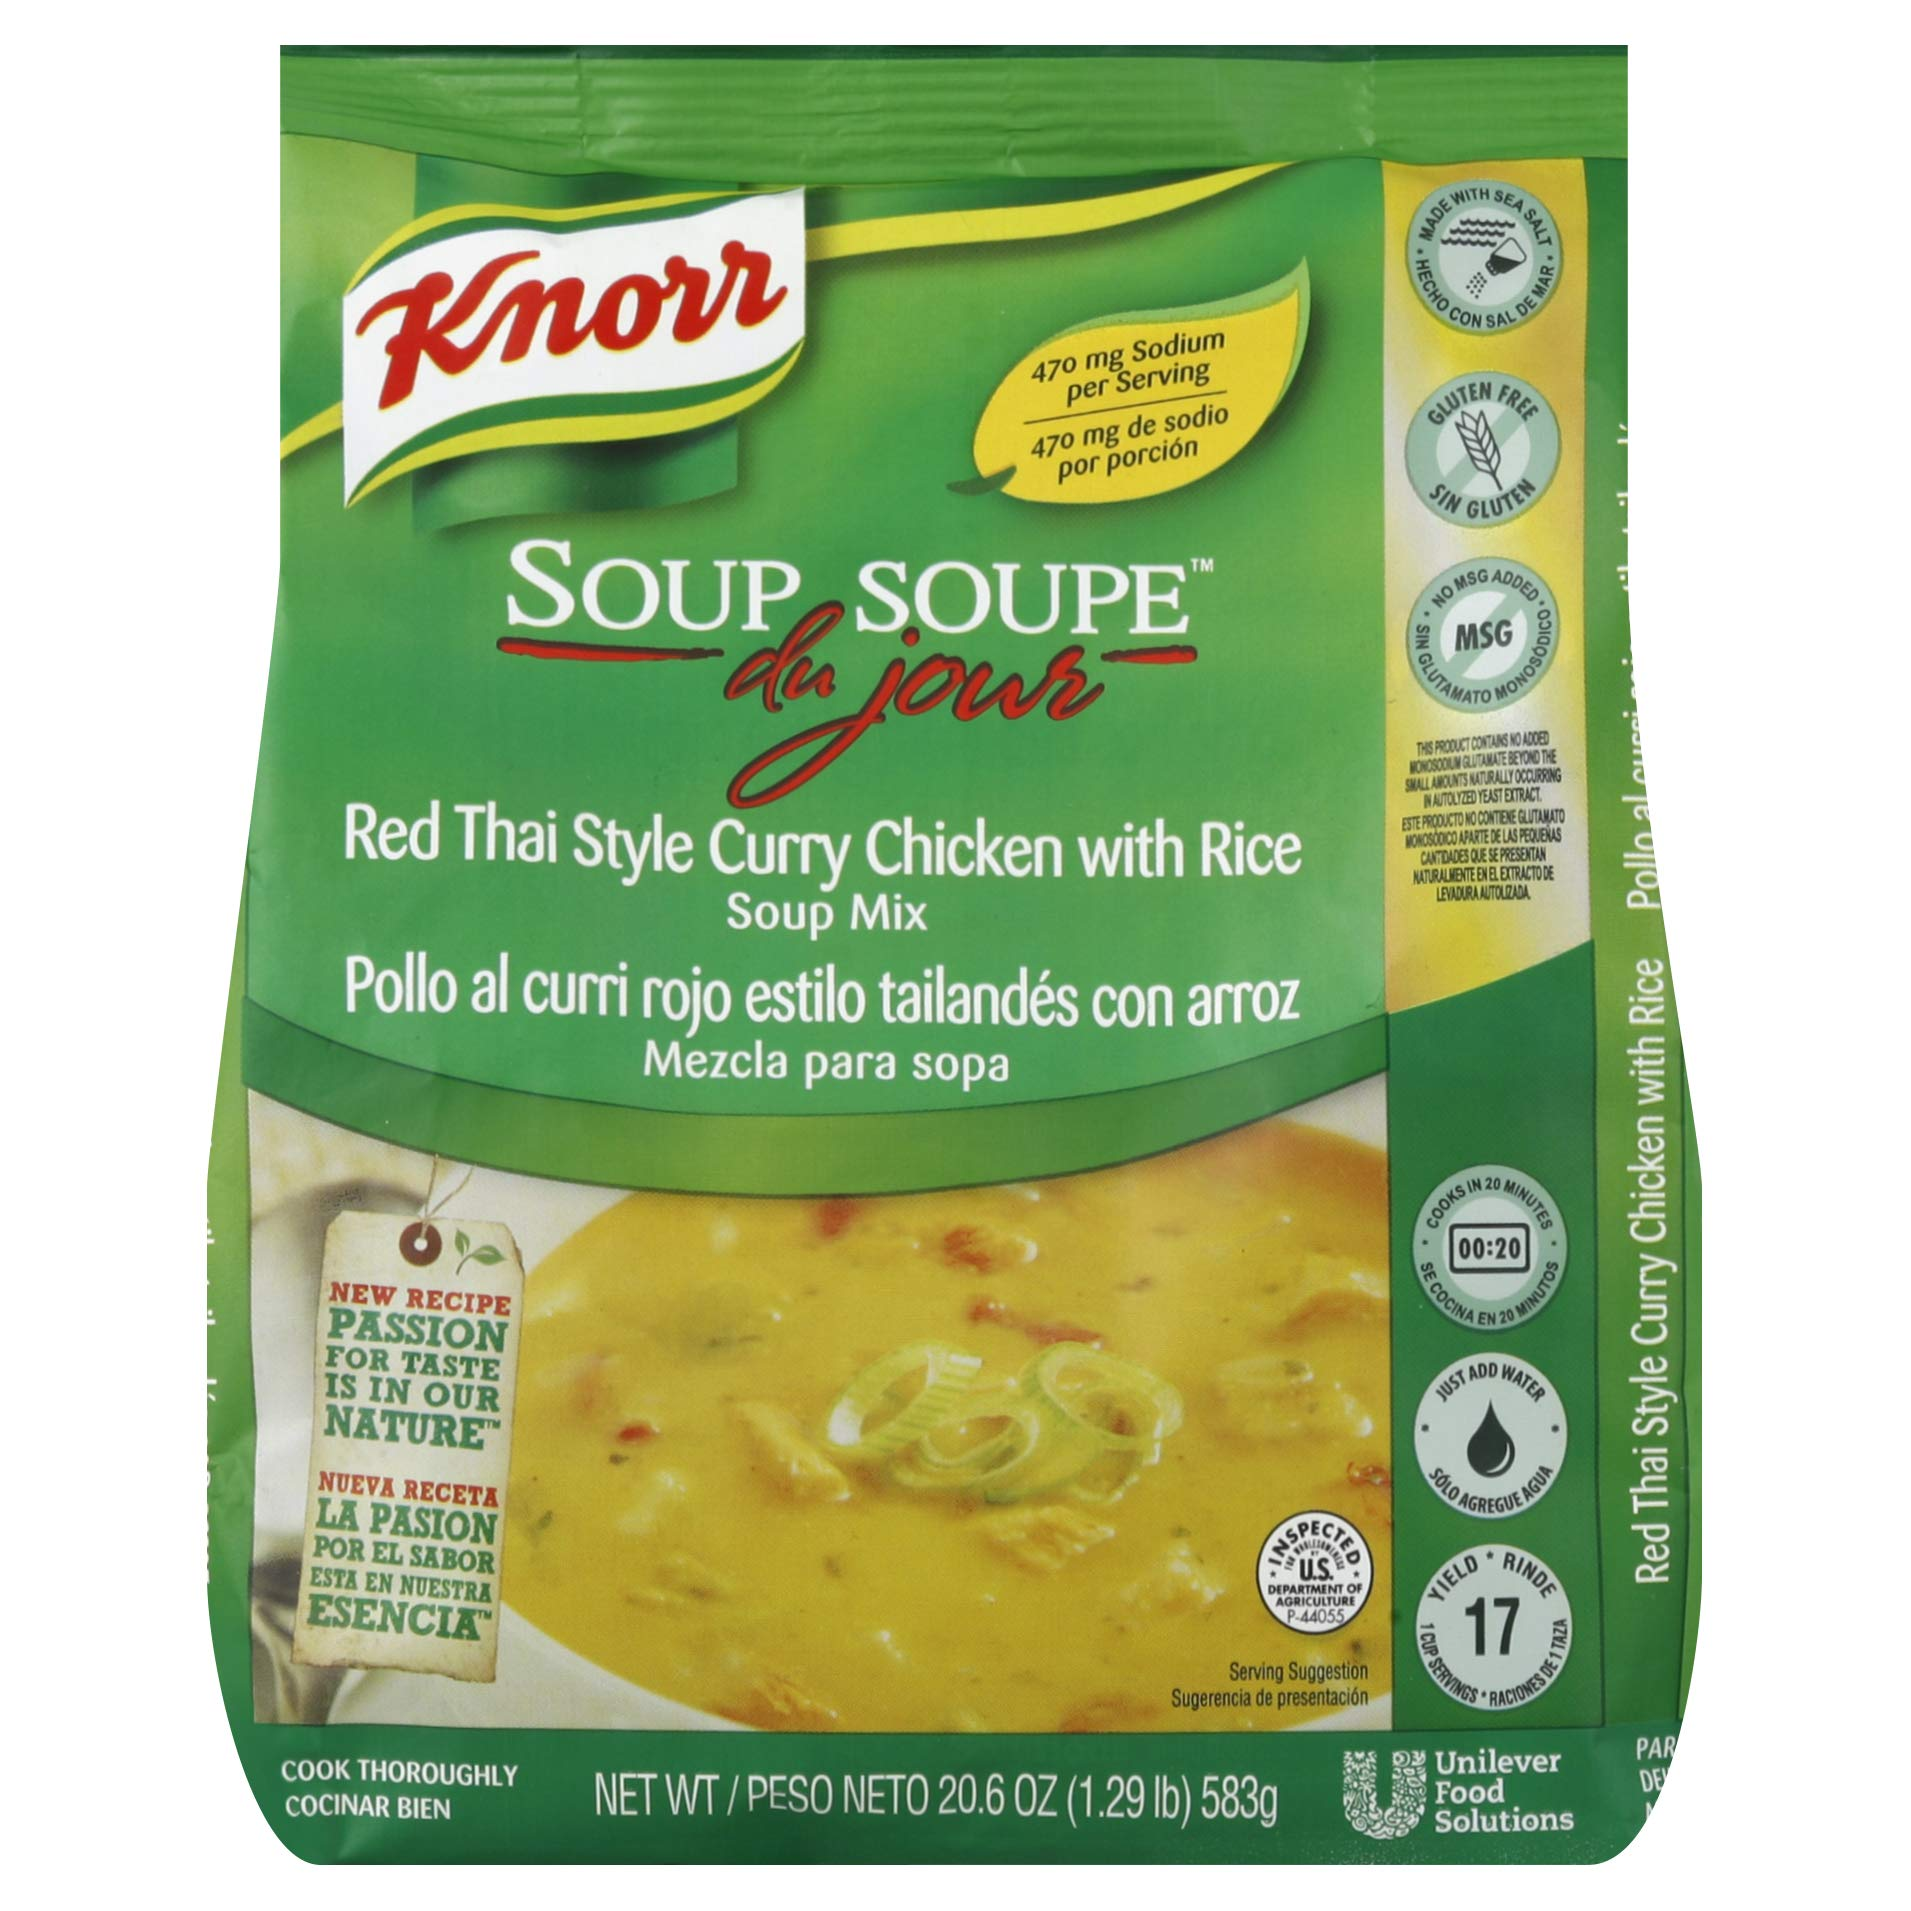 Knorr Professional Soup du Jour Red Thai Style Curry Chicken with Rice Soup Mix Gluten Free, No added MSG, 0g Trans Fat per Serving, Just Add Water, 20.6 oz, Pack of 4 by Knorr